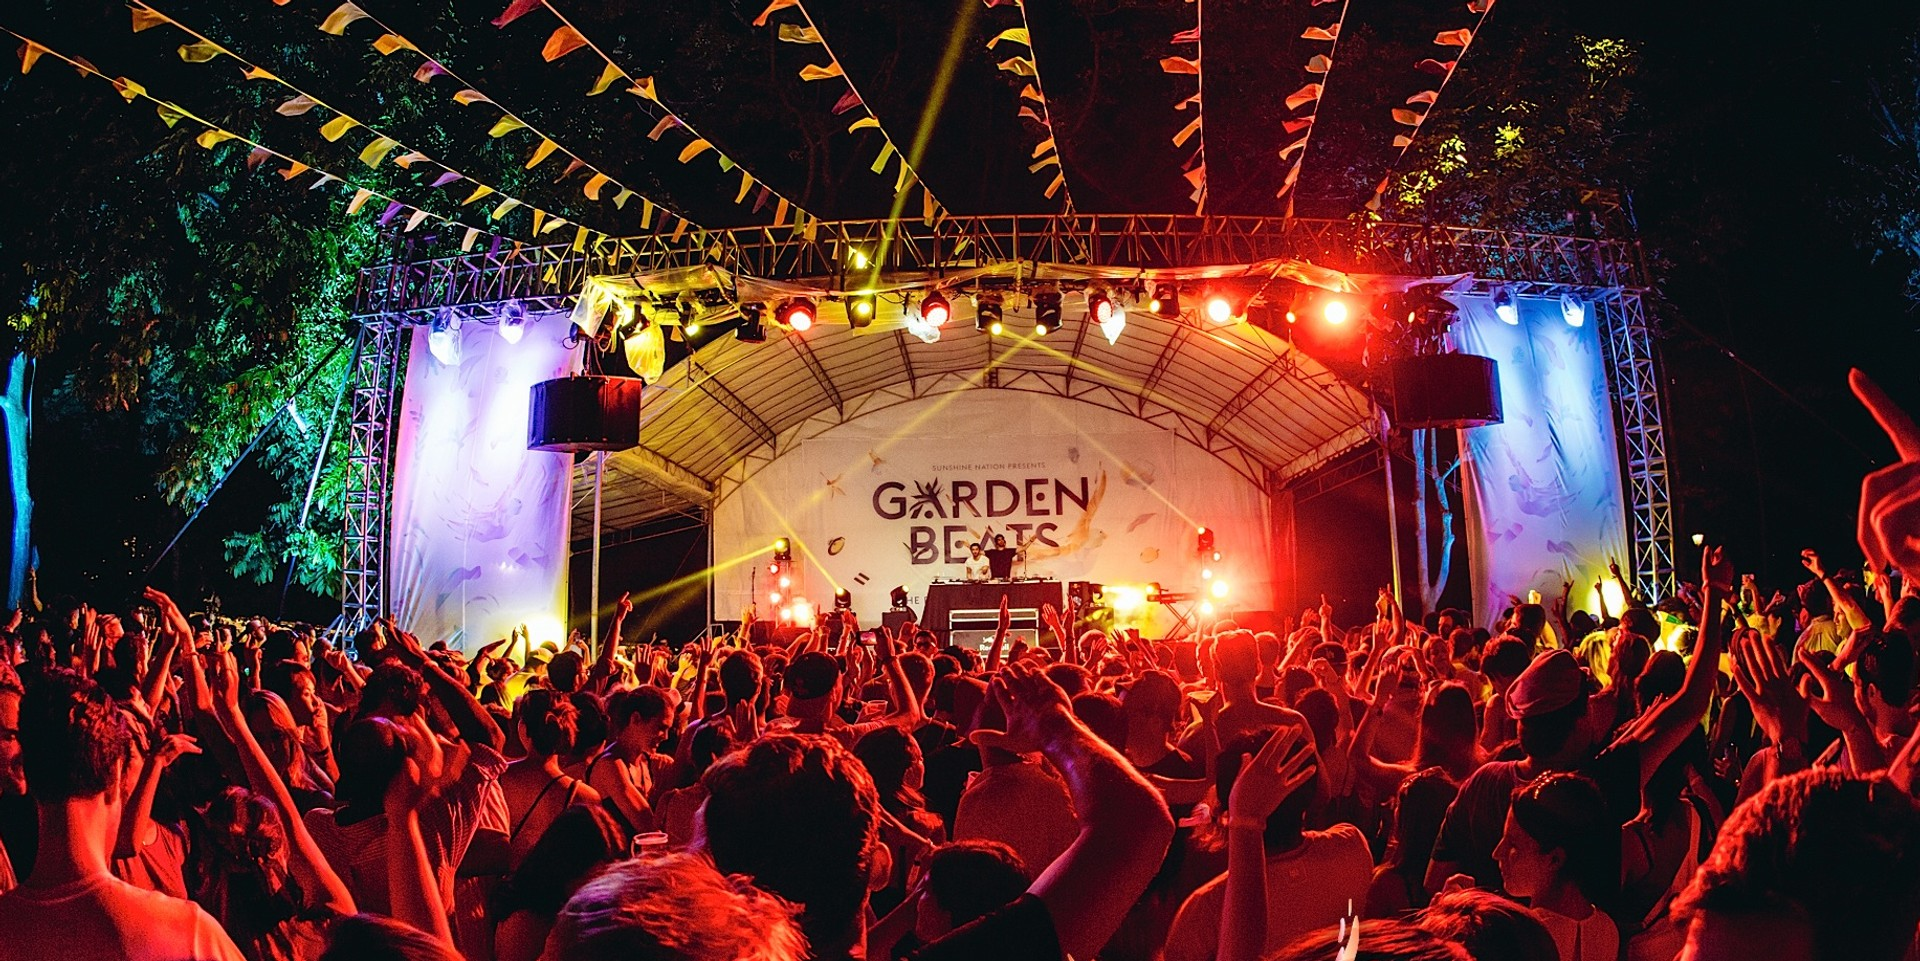 Garden Beats, the chillest electronic music picnic in Singapore, returns in 2017